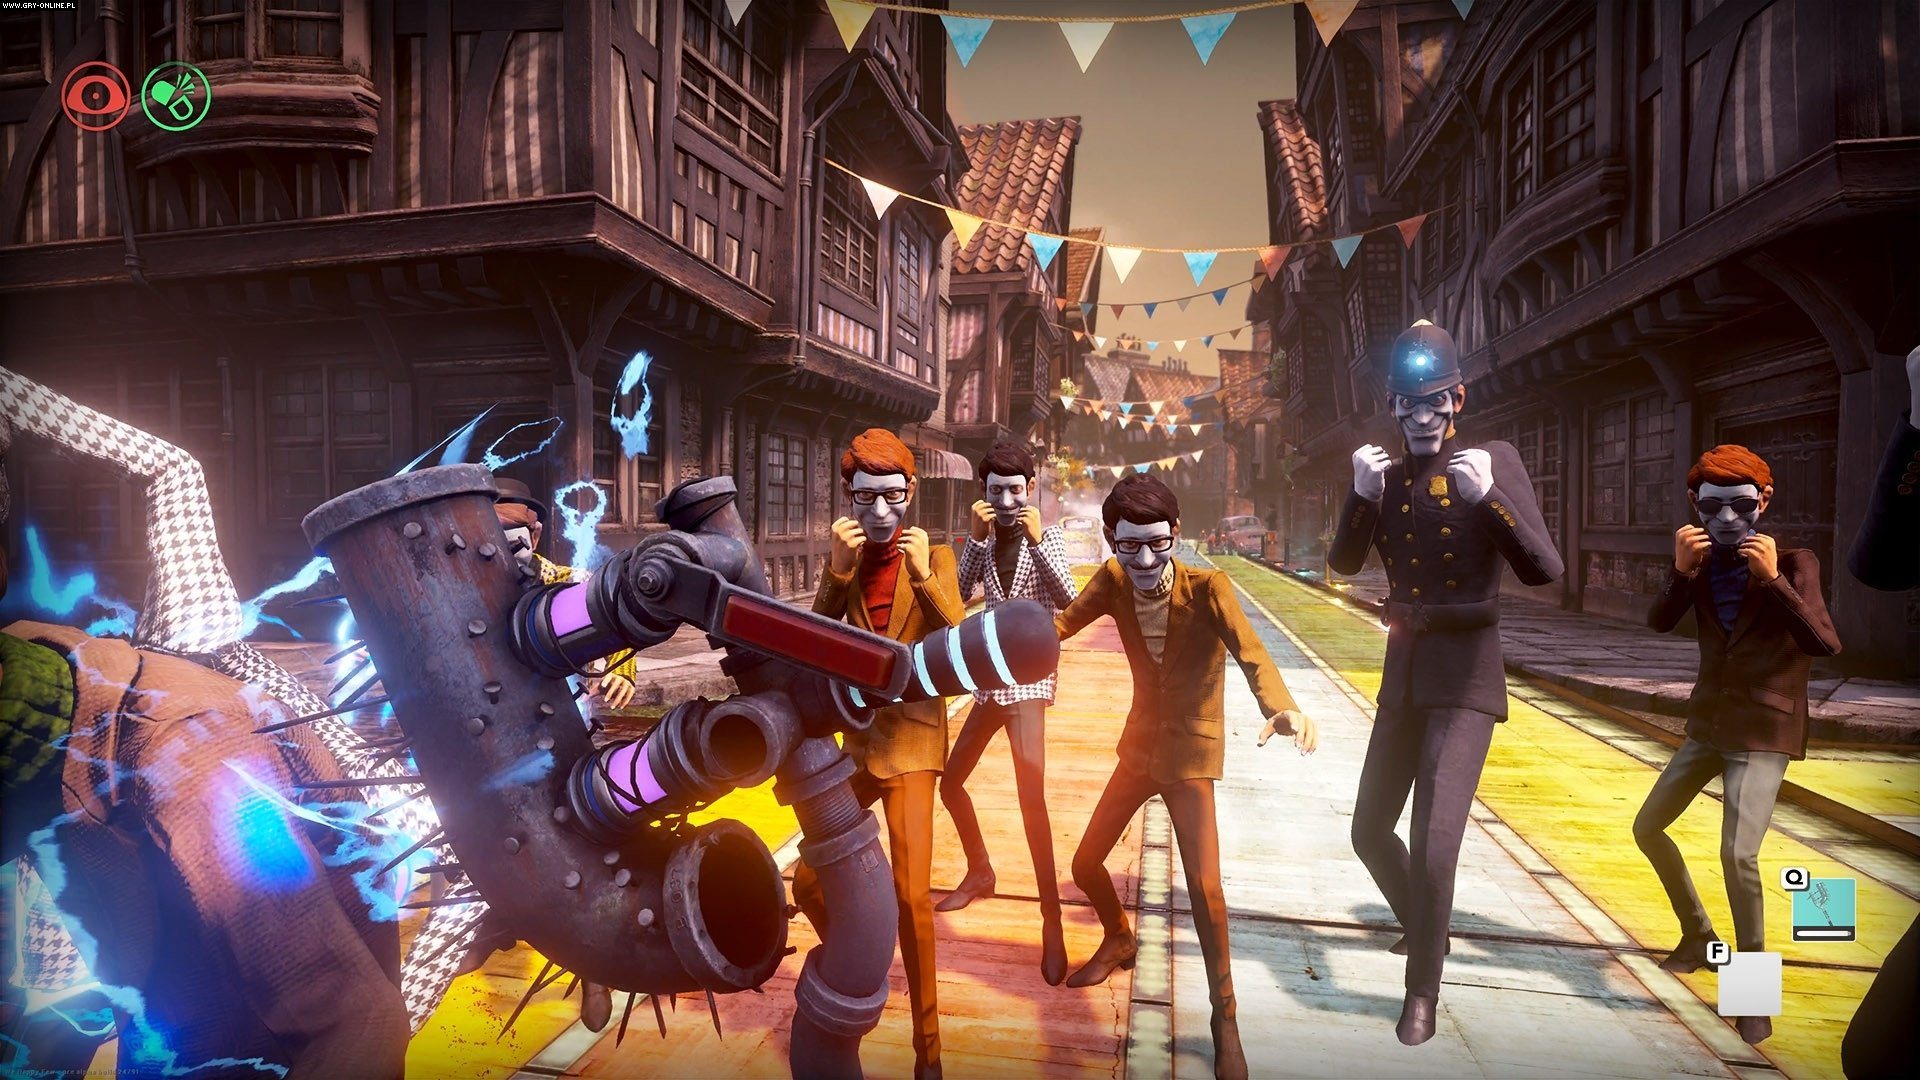 We Happy Few PC, PS4, XONE Gry Screen 20/40, Compulsion Games, Gearbox Publishing